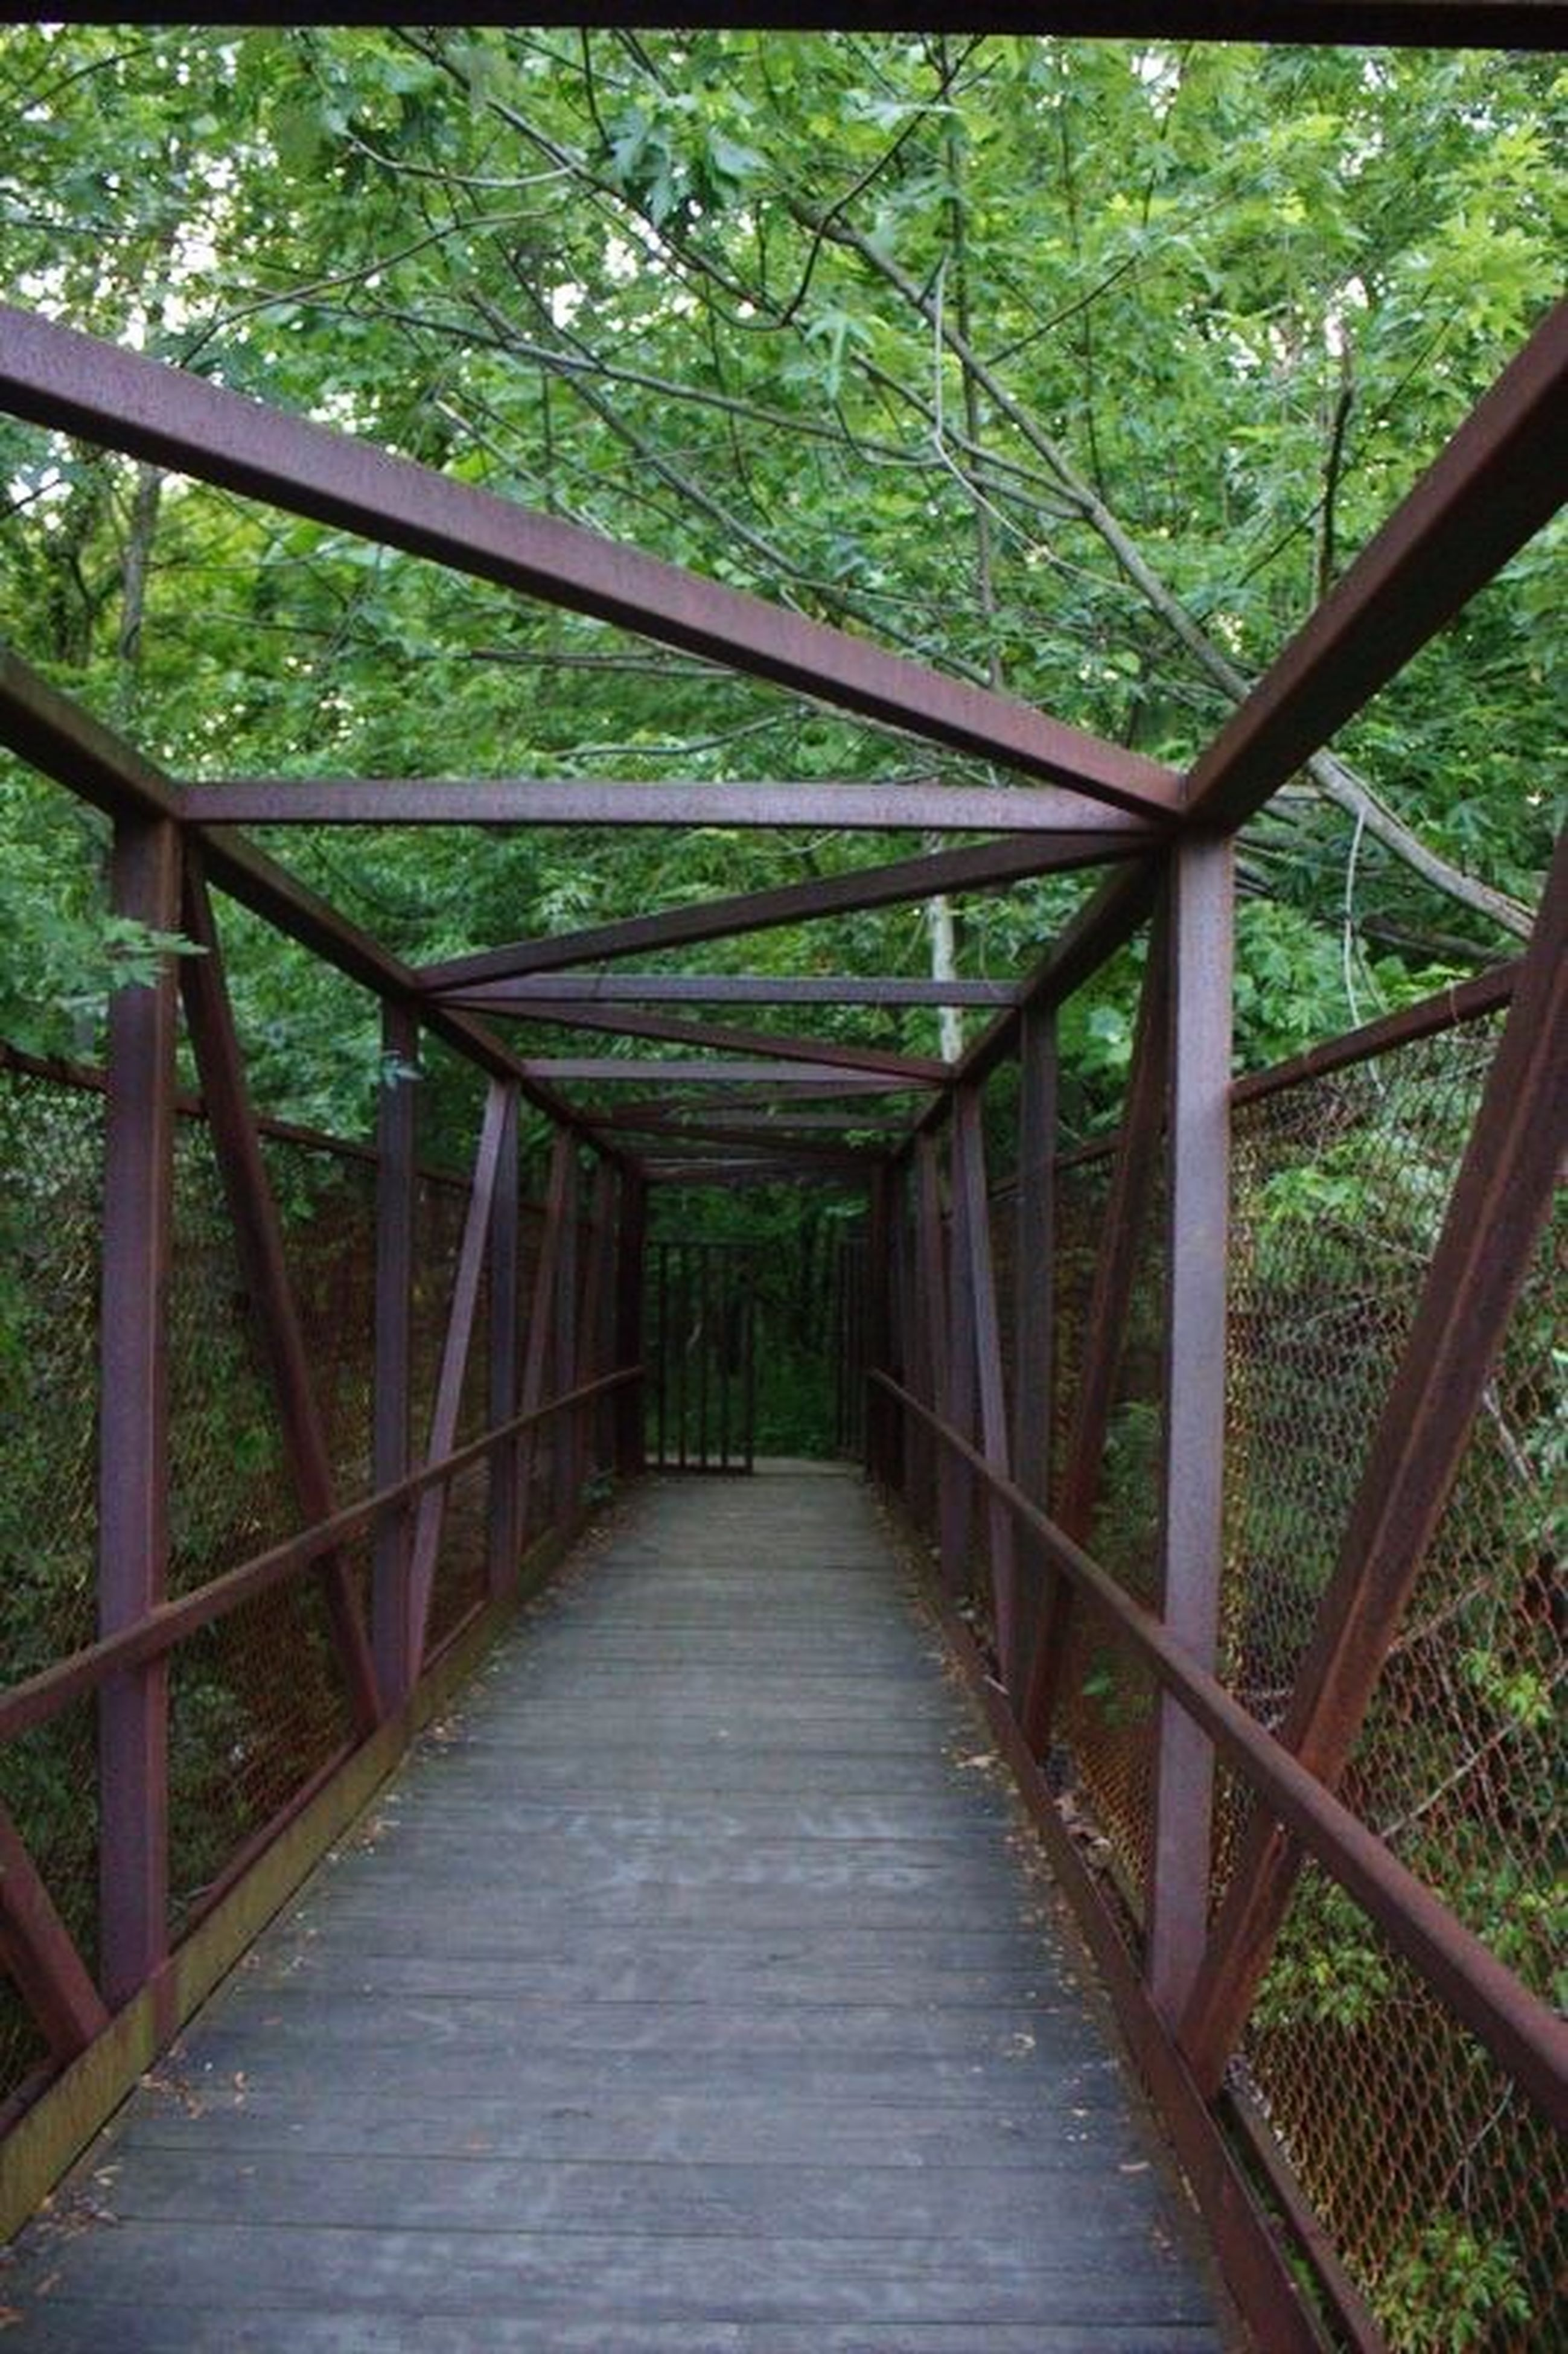 the way forward, tree, railing, footbridge, diminishing perspective, connection, wood - material, growth, built structure, bridge - man made structure, tranquility, forest, metal, nature, vanishing point, fence, day, wooden, no people, sunlight